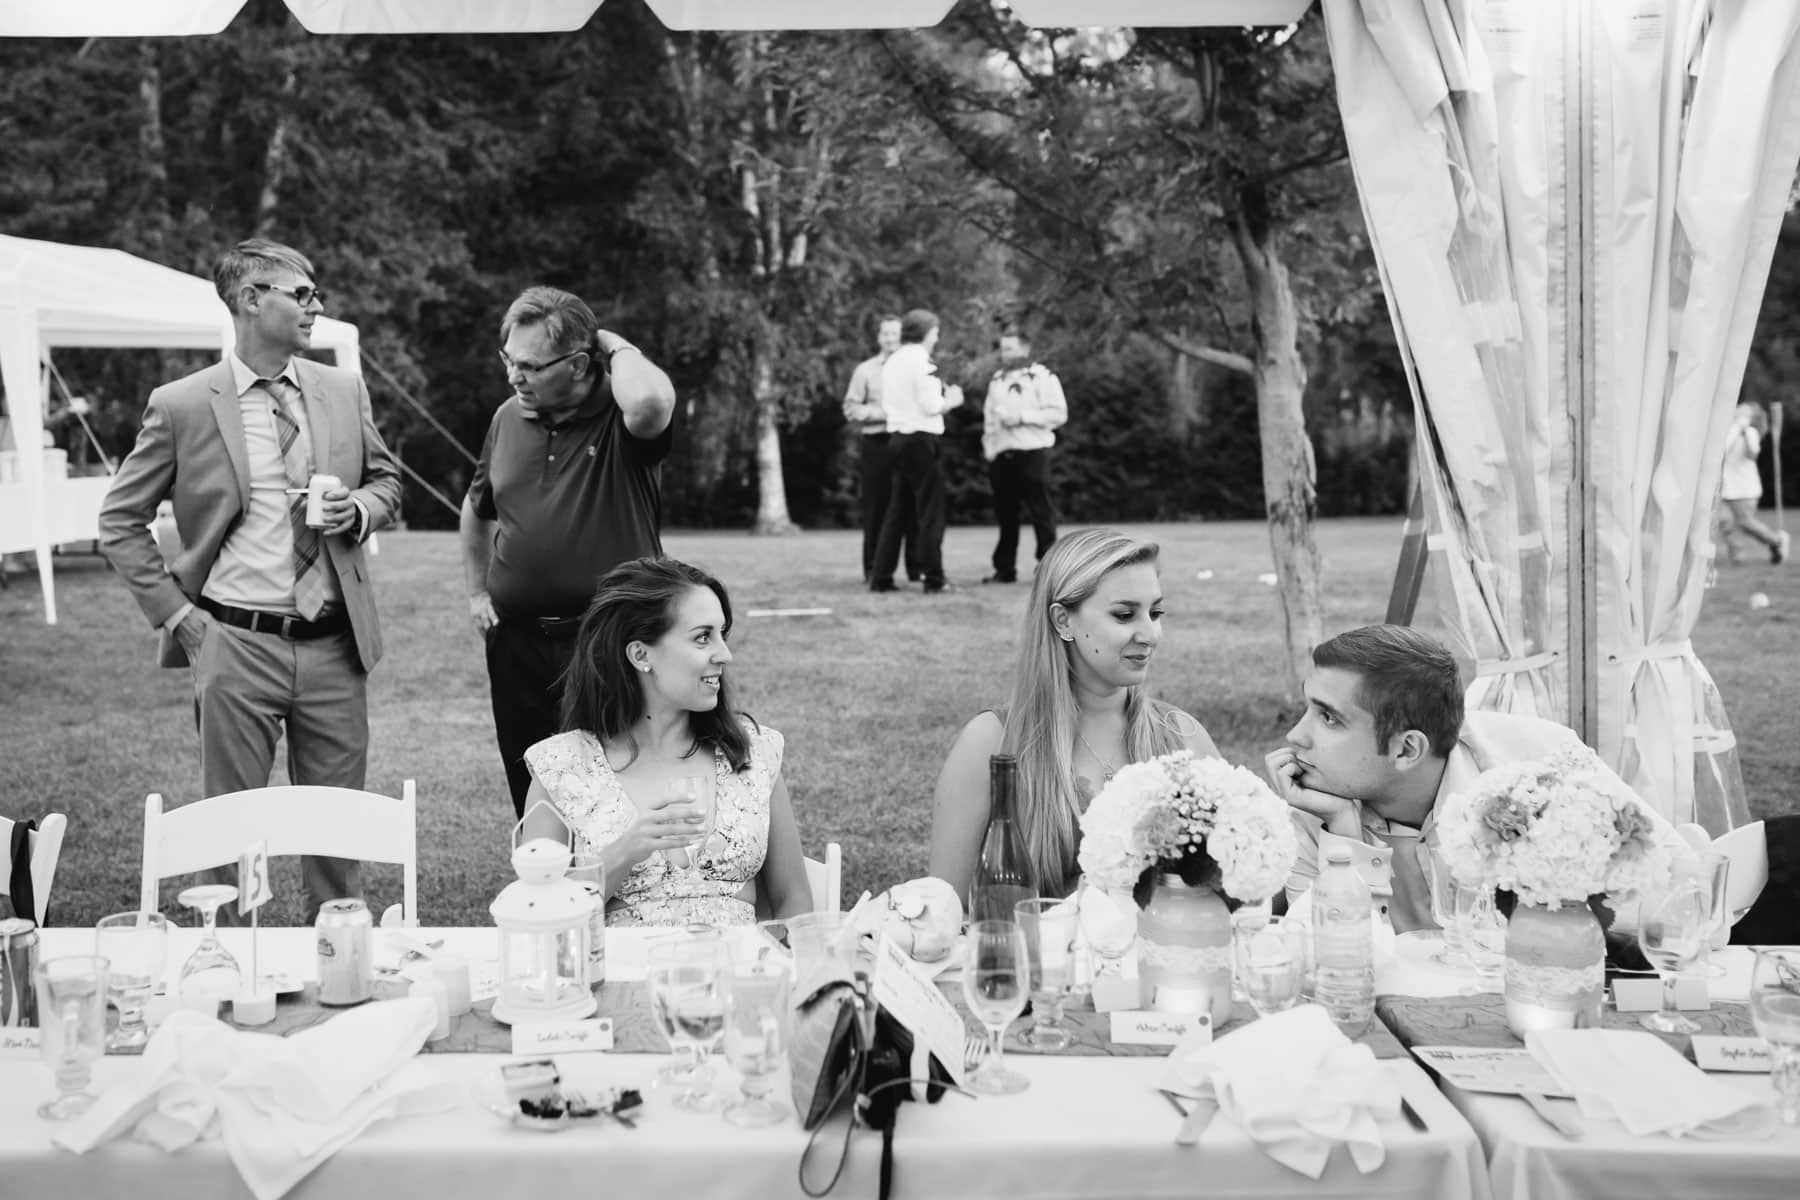 A photojournalistic moment caught between guests in deep conversation in these backyard wedding photos.